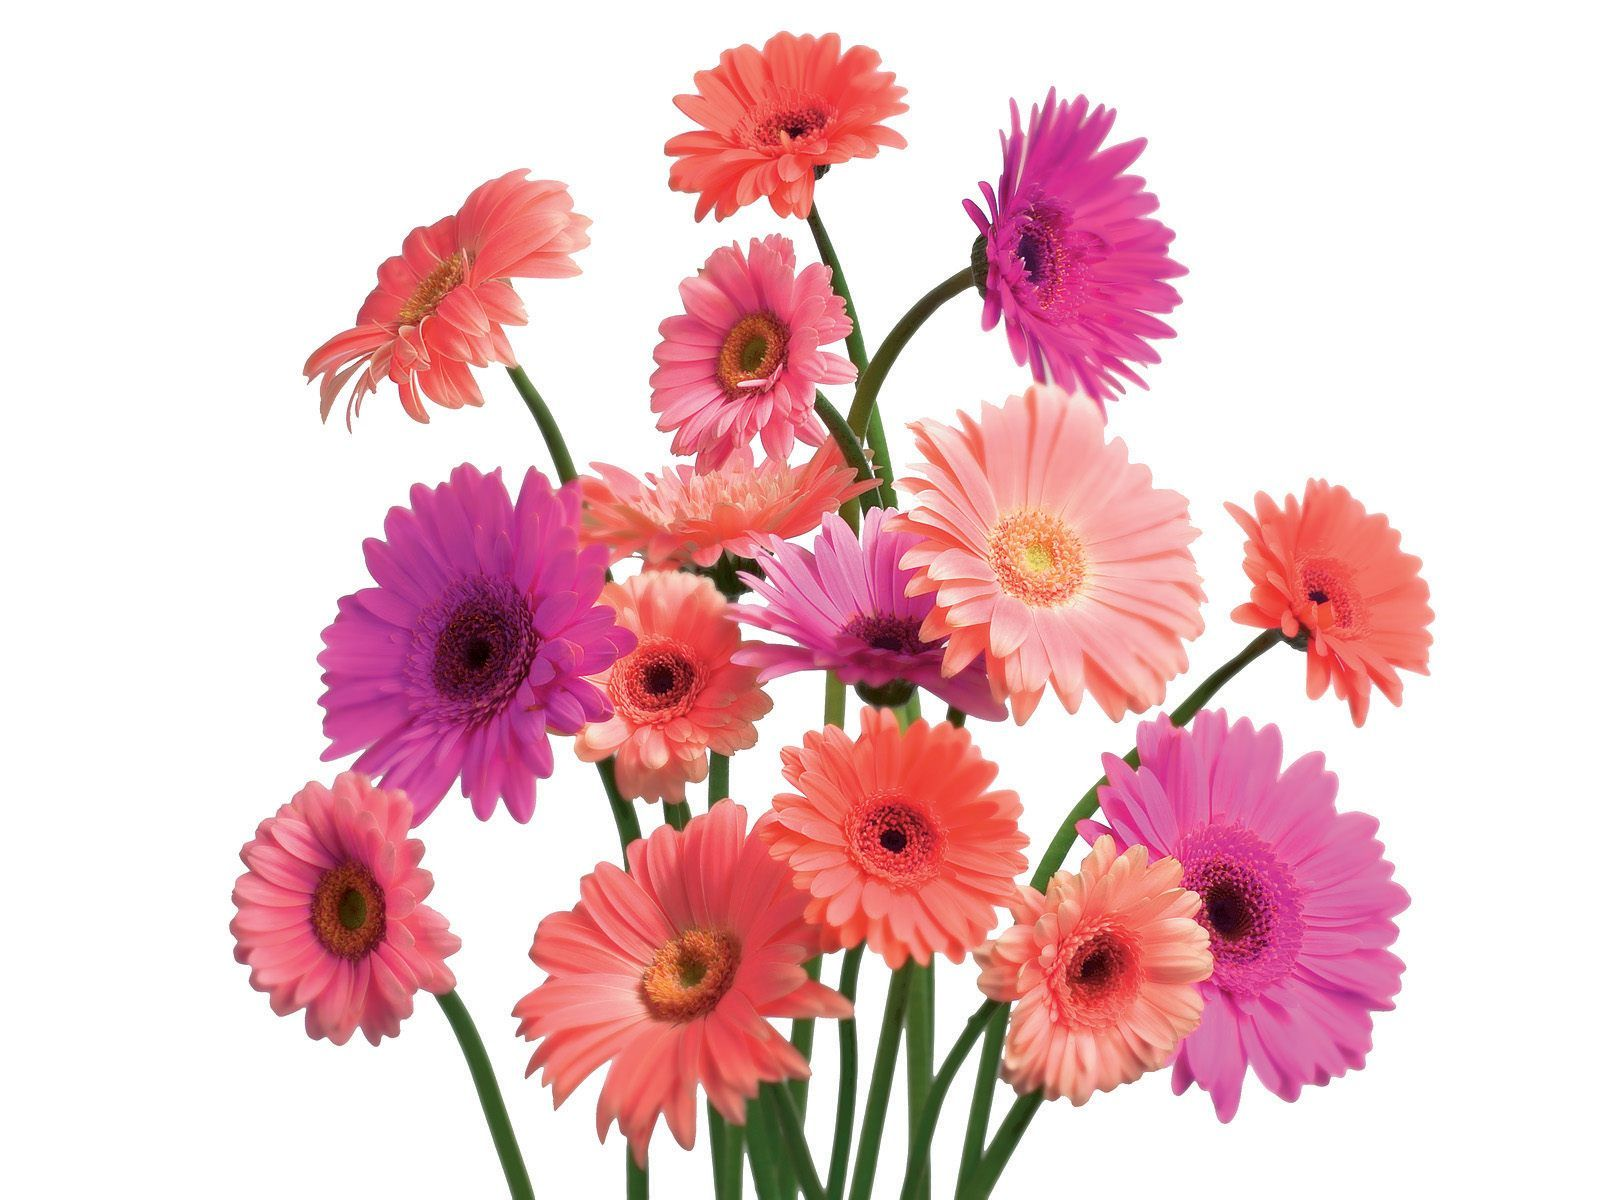 Flowers Flower Beautiful Nature Pink Daisy Specila Wallpaper - Flower HD PNG